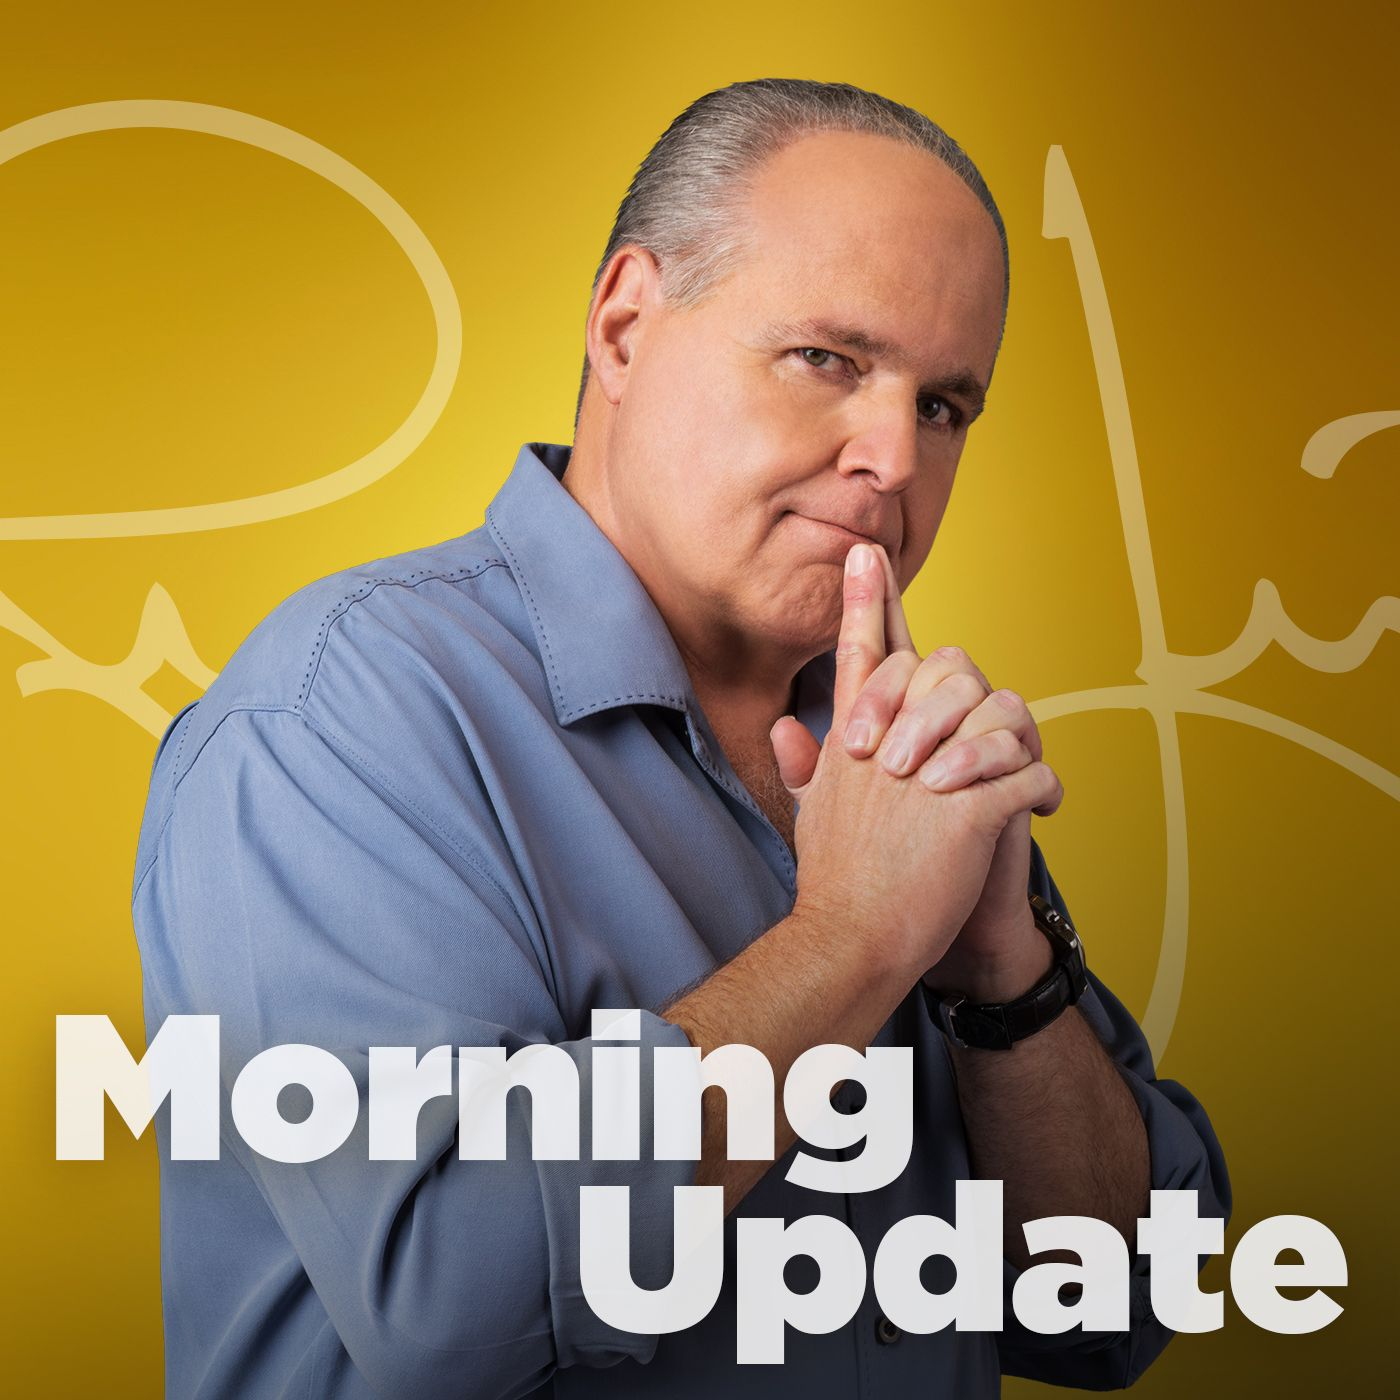 Rush Limbaugh Jun 21, 2019